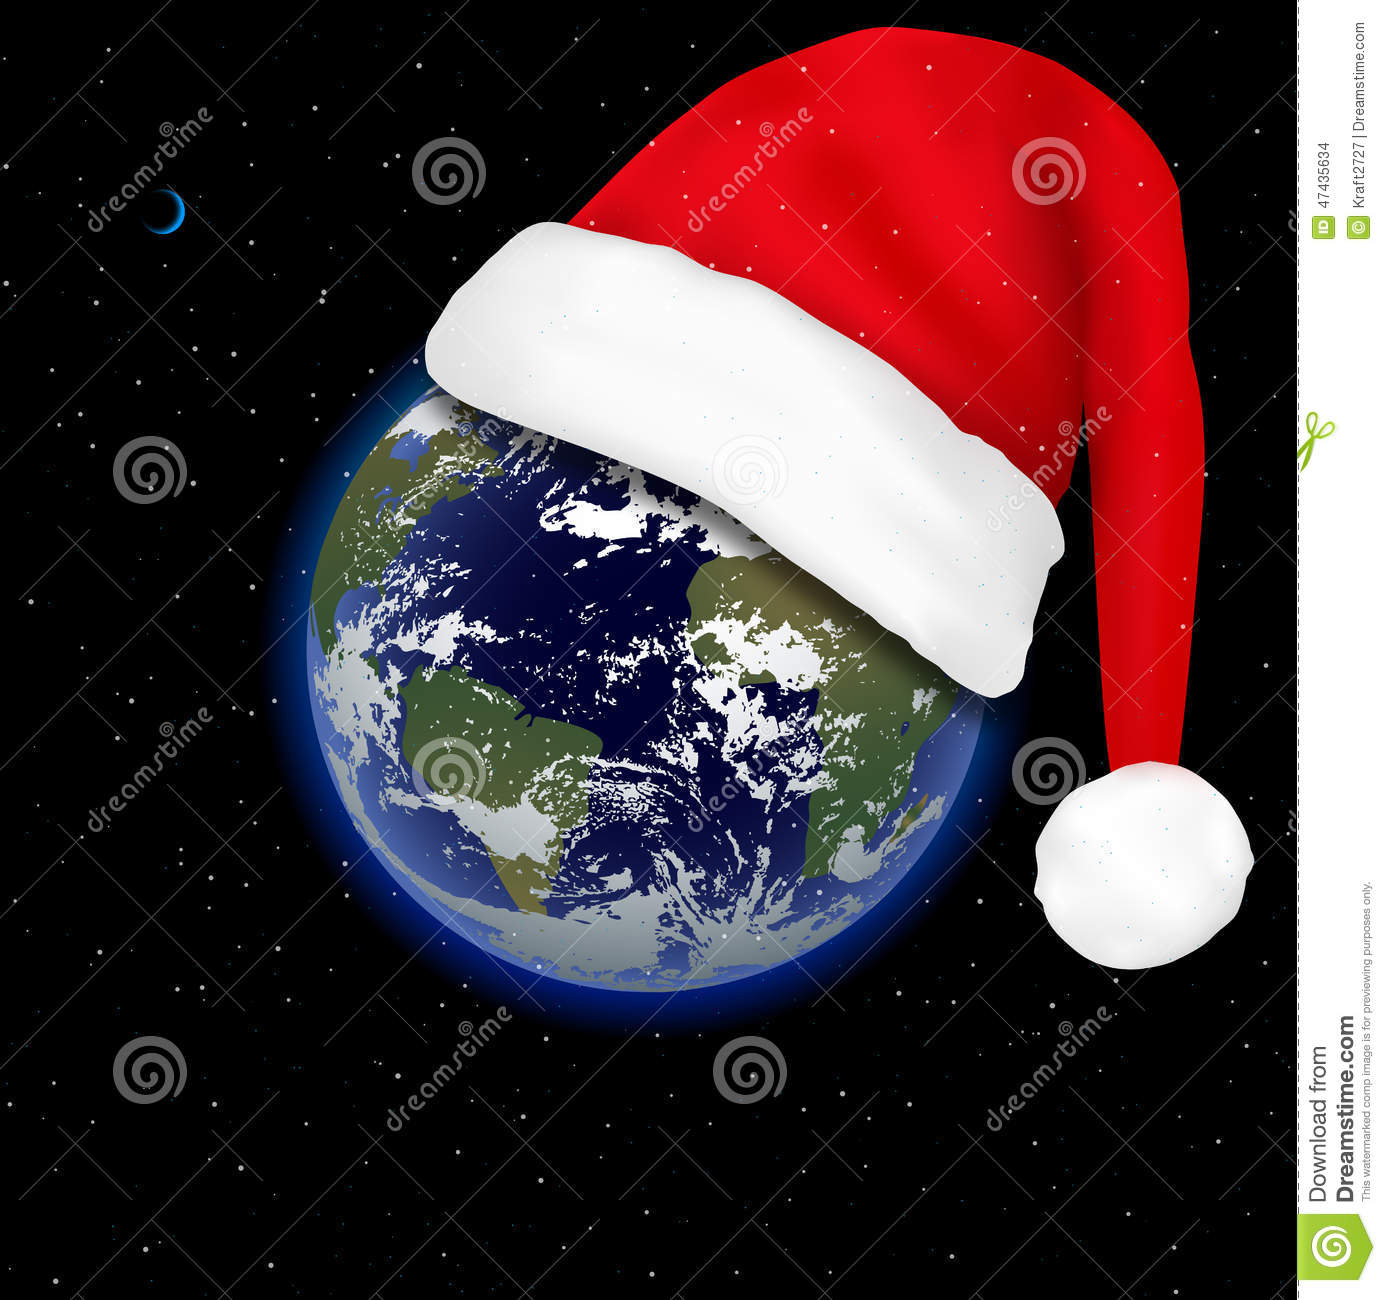 """a santa clauss recount on coming to earth Santa claus is a well known and loved character, but nathan grills and  on christmas cards and drawings9 one blogger recounts how a 4 year old child  the present to a few more 100 kids before coming down with influenza himself  at """"designated airports, ports and certain ground crossings,"""" and the."""